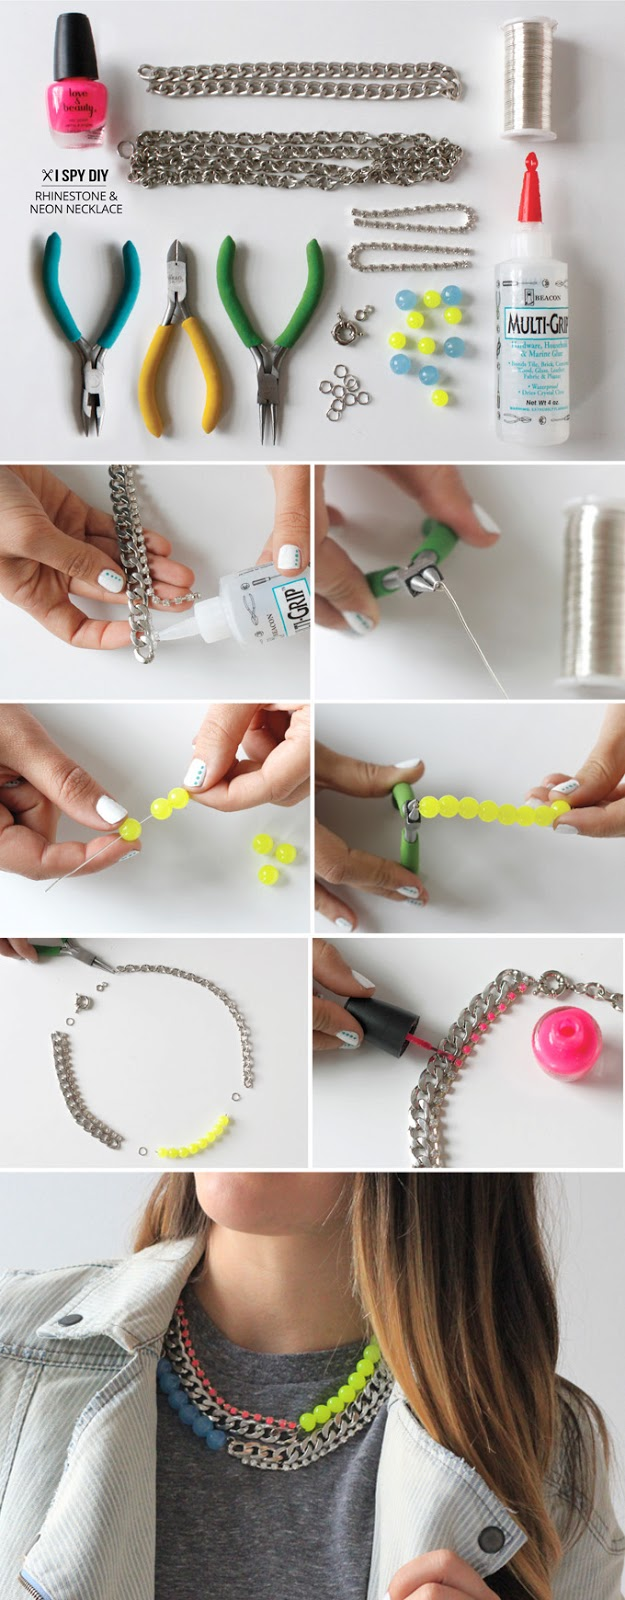 Ispydiy_neonnecklace_steps